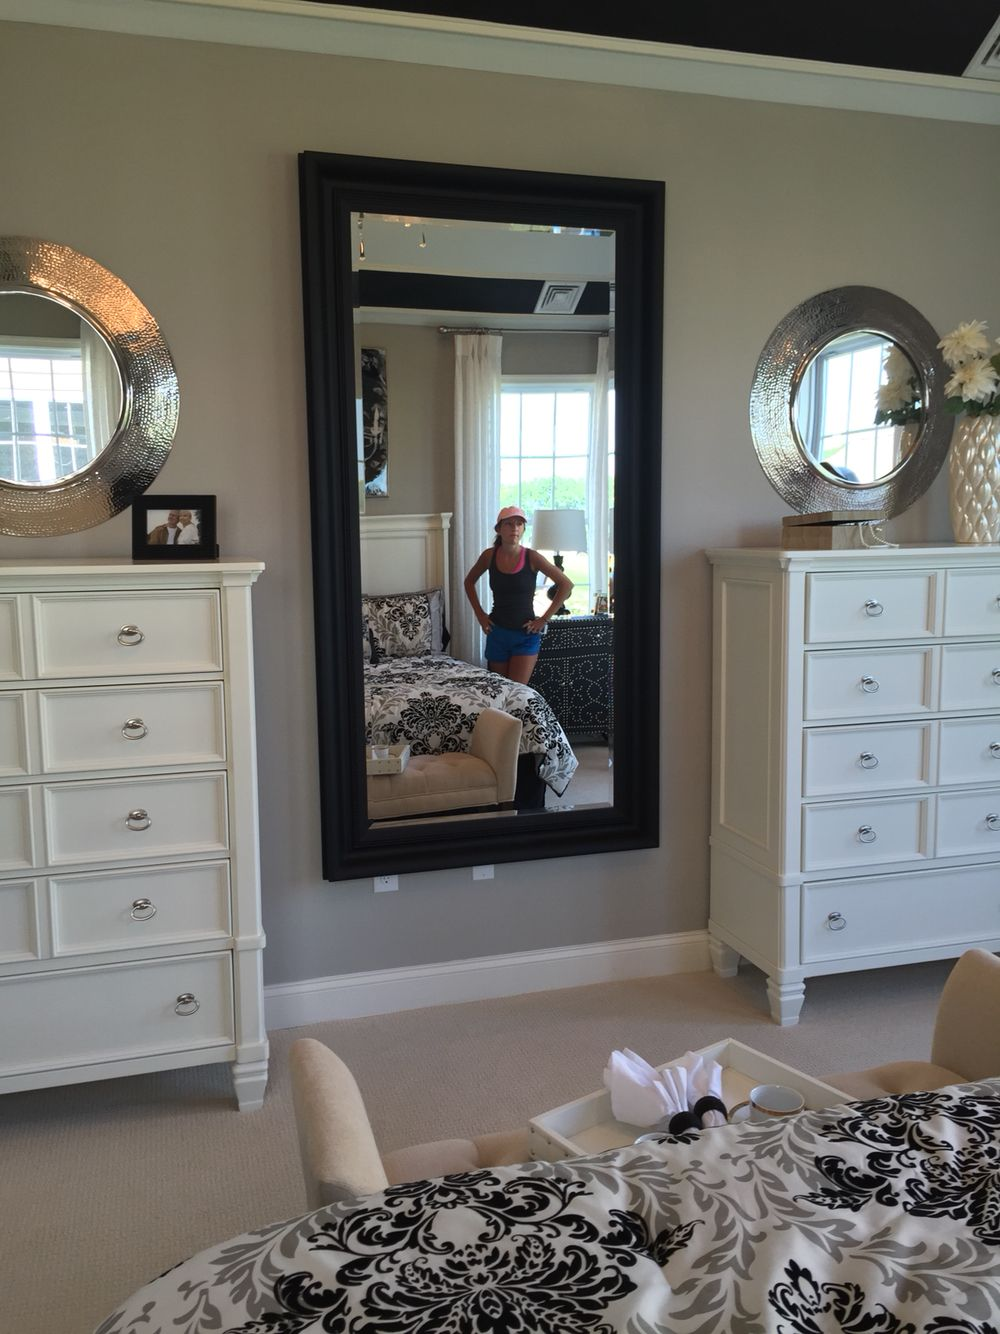 Best 25 Dresser Ideas Ideas On Pinterest Upcycled This Month